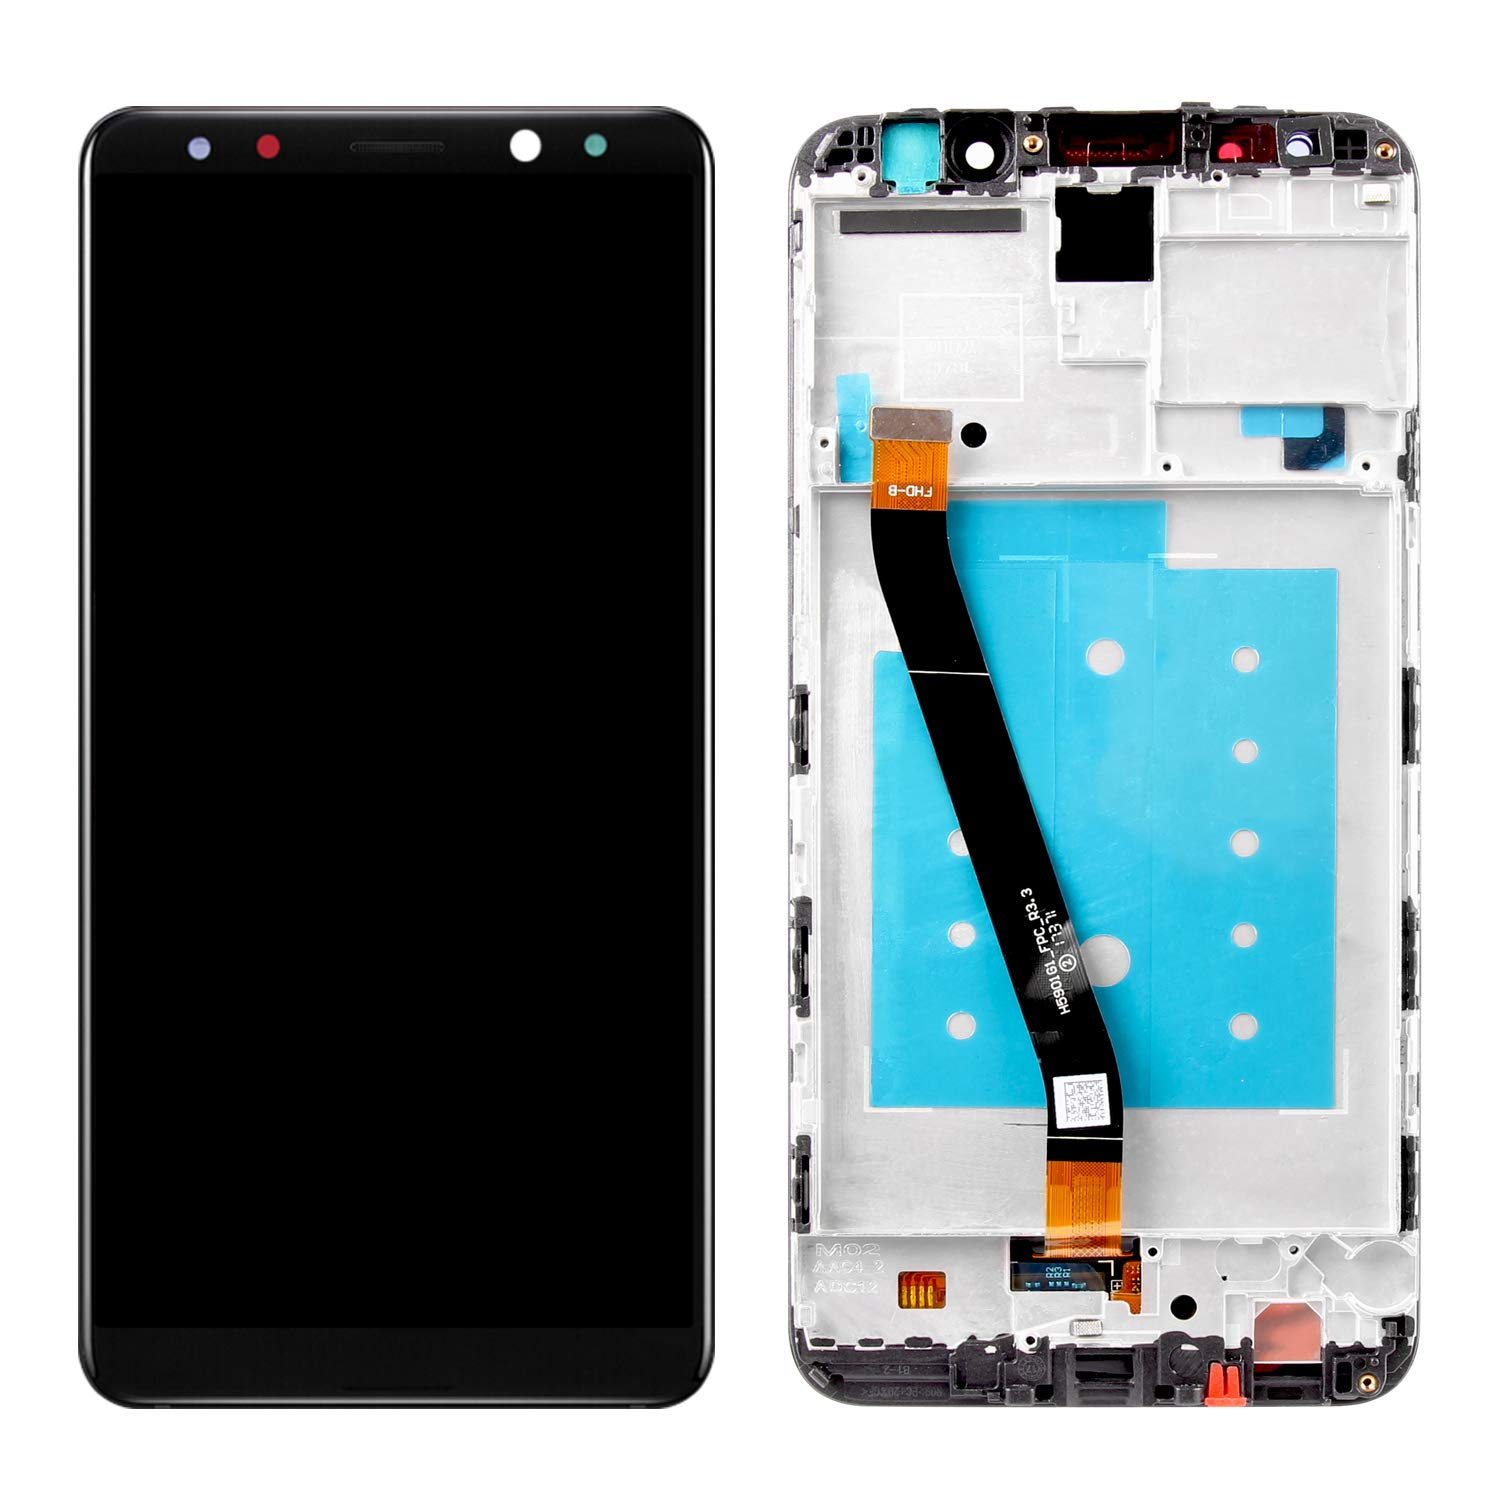 Screen Replacement for Huawei Mate 10 Lite, Compatible with RNE-L01 RNE-L21 RNE-L23 LCD Display Touch Screen Replacement Digitizer Assembly with Repair Tools Kit (Black with Frame) by Puzzle